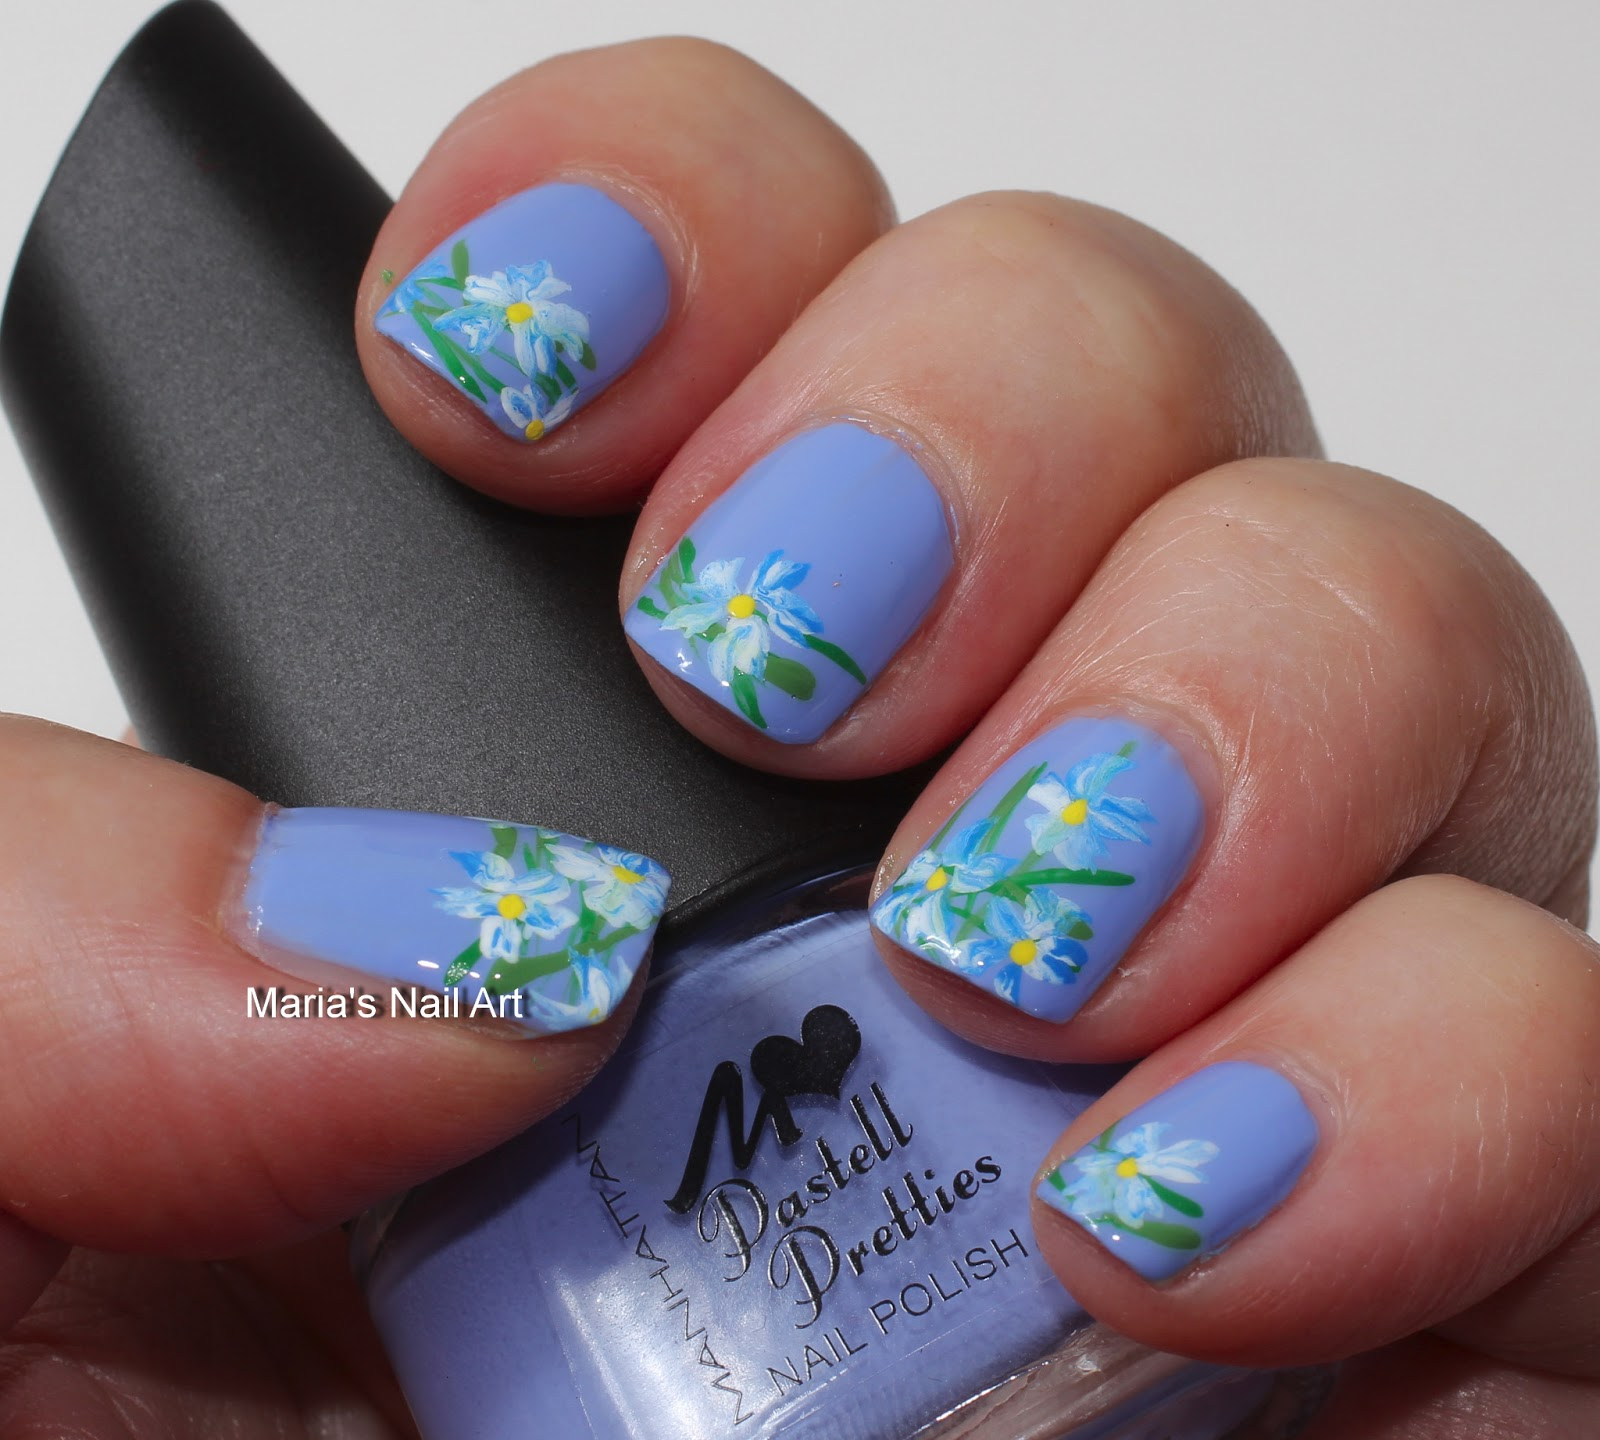 Marias Nail Art And Polish Blog Subtle Floral Nail Art On: Marias Nail Art And Polish Blog: Subtle Blue-white Flowers